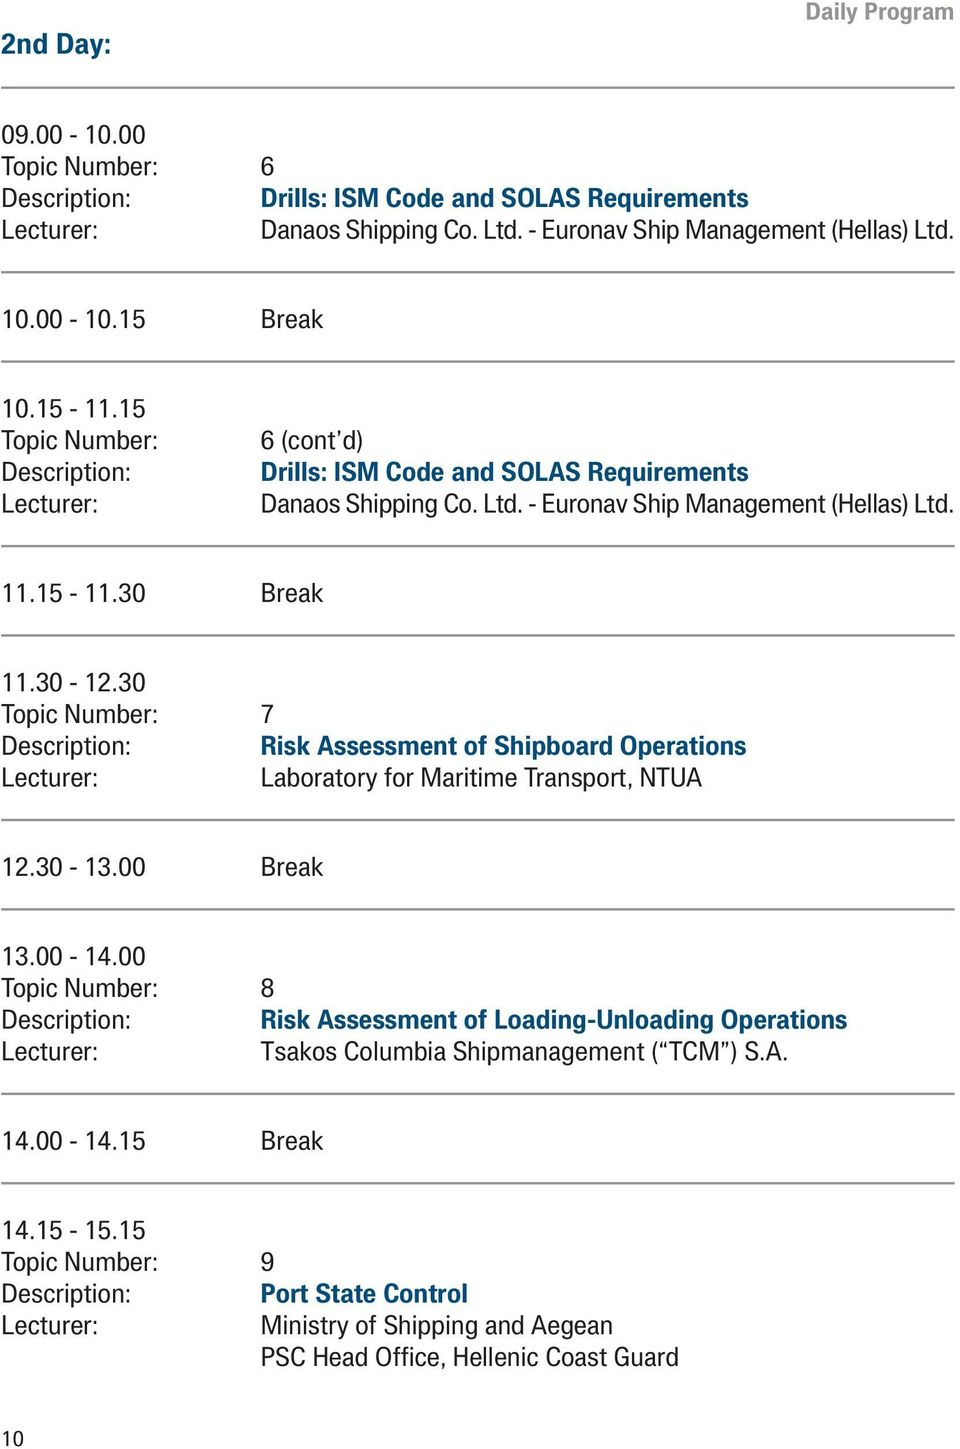 30 Topic Number: 7 Description: Risk Assessment of Shipboard Operations Laboratory for Maritime Transport, NTUA 12.30-13.00 Break 13.00-14.